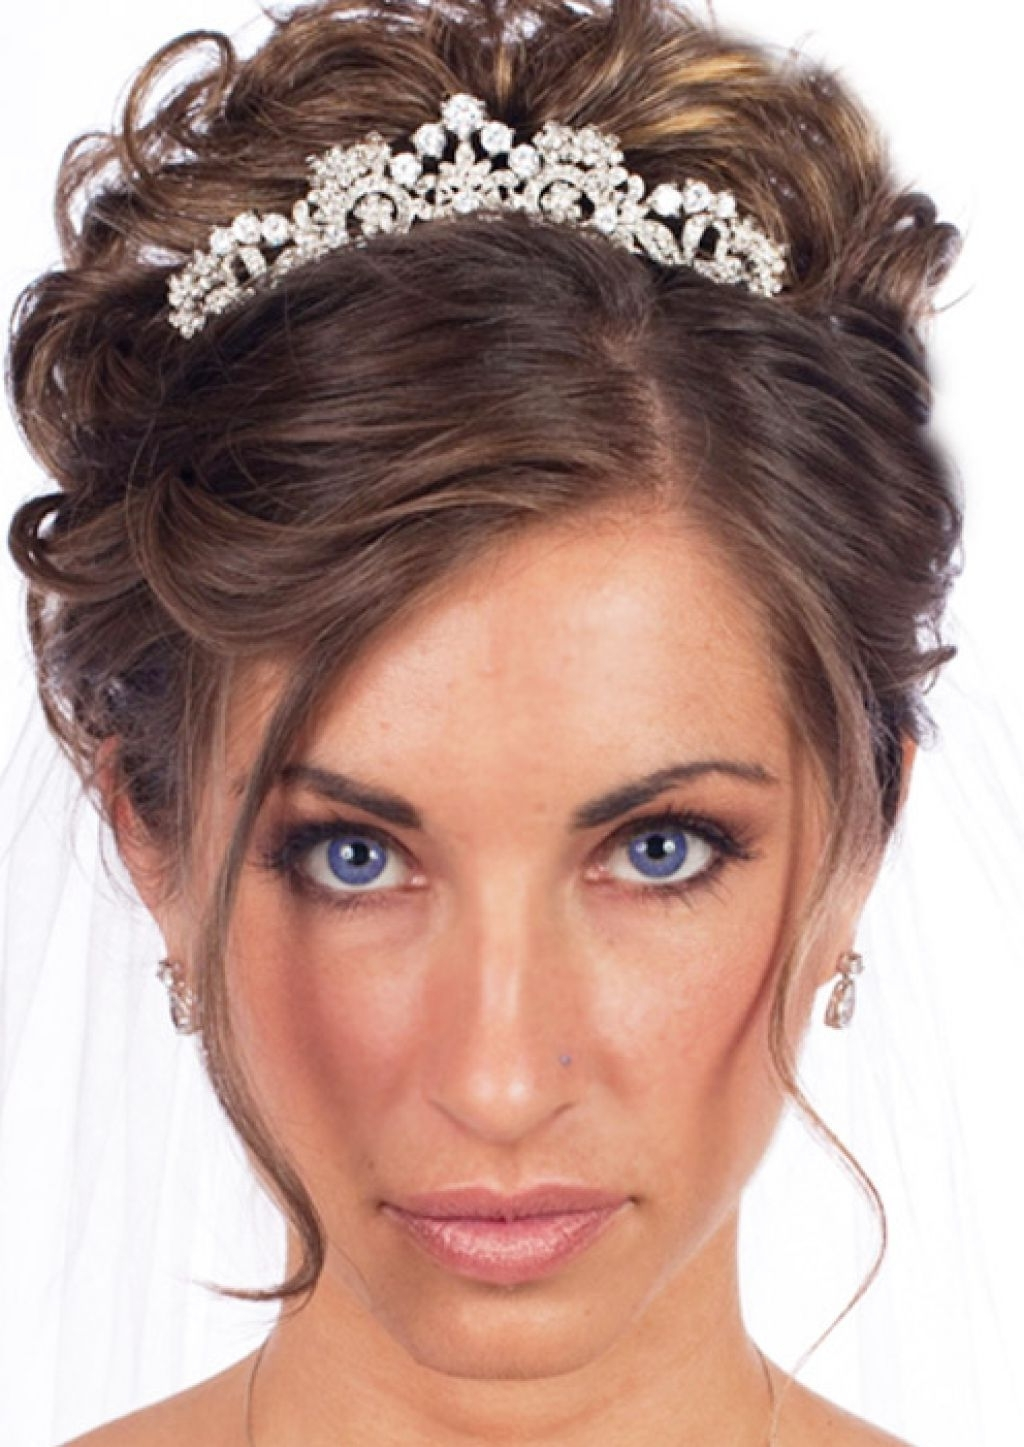 Wedding Updos With Veil Hairstyle – Girly Hairstyle Inspiration With Regard To Best And Newest Wedding Hairstyles For Long Hair With Veil And Tiara (View 11 of 15)